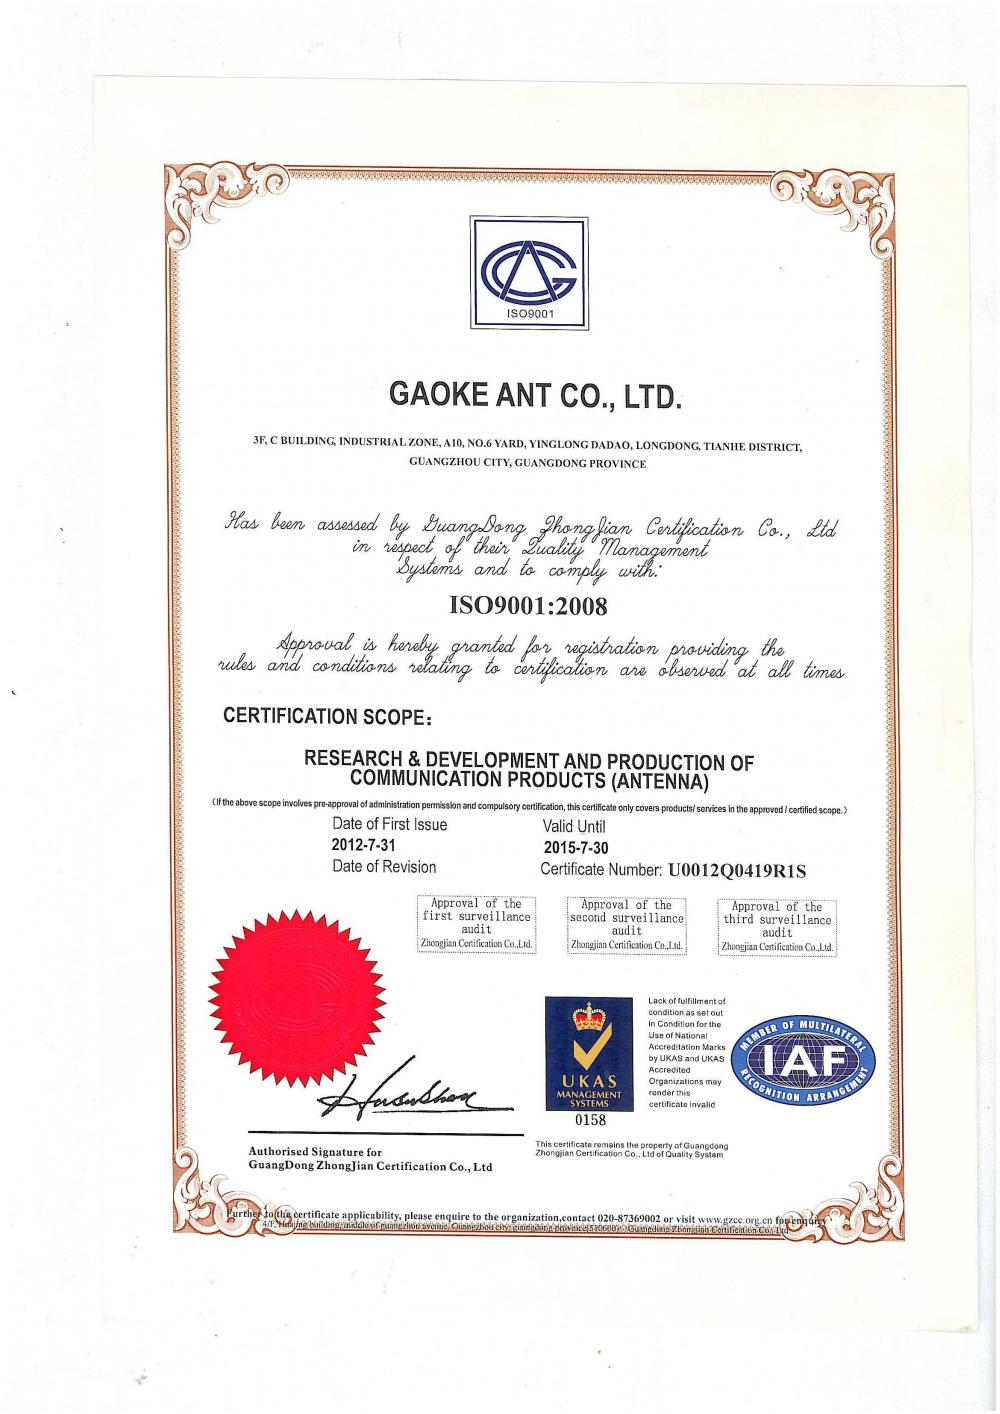 ISO90012008 Certification